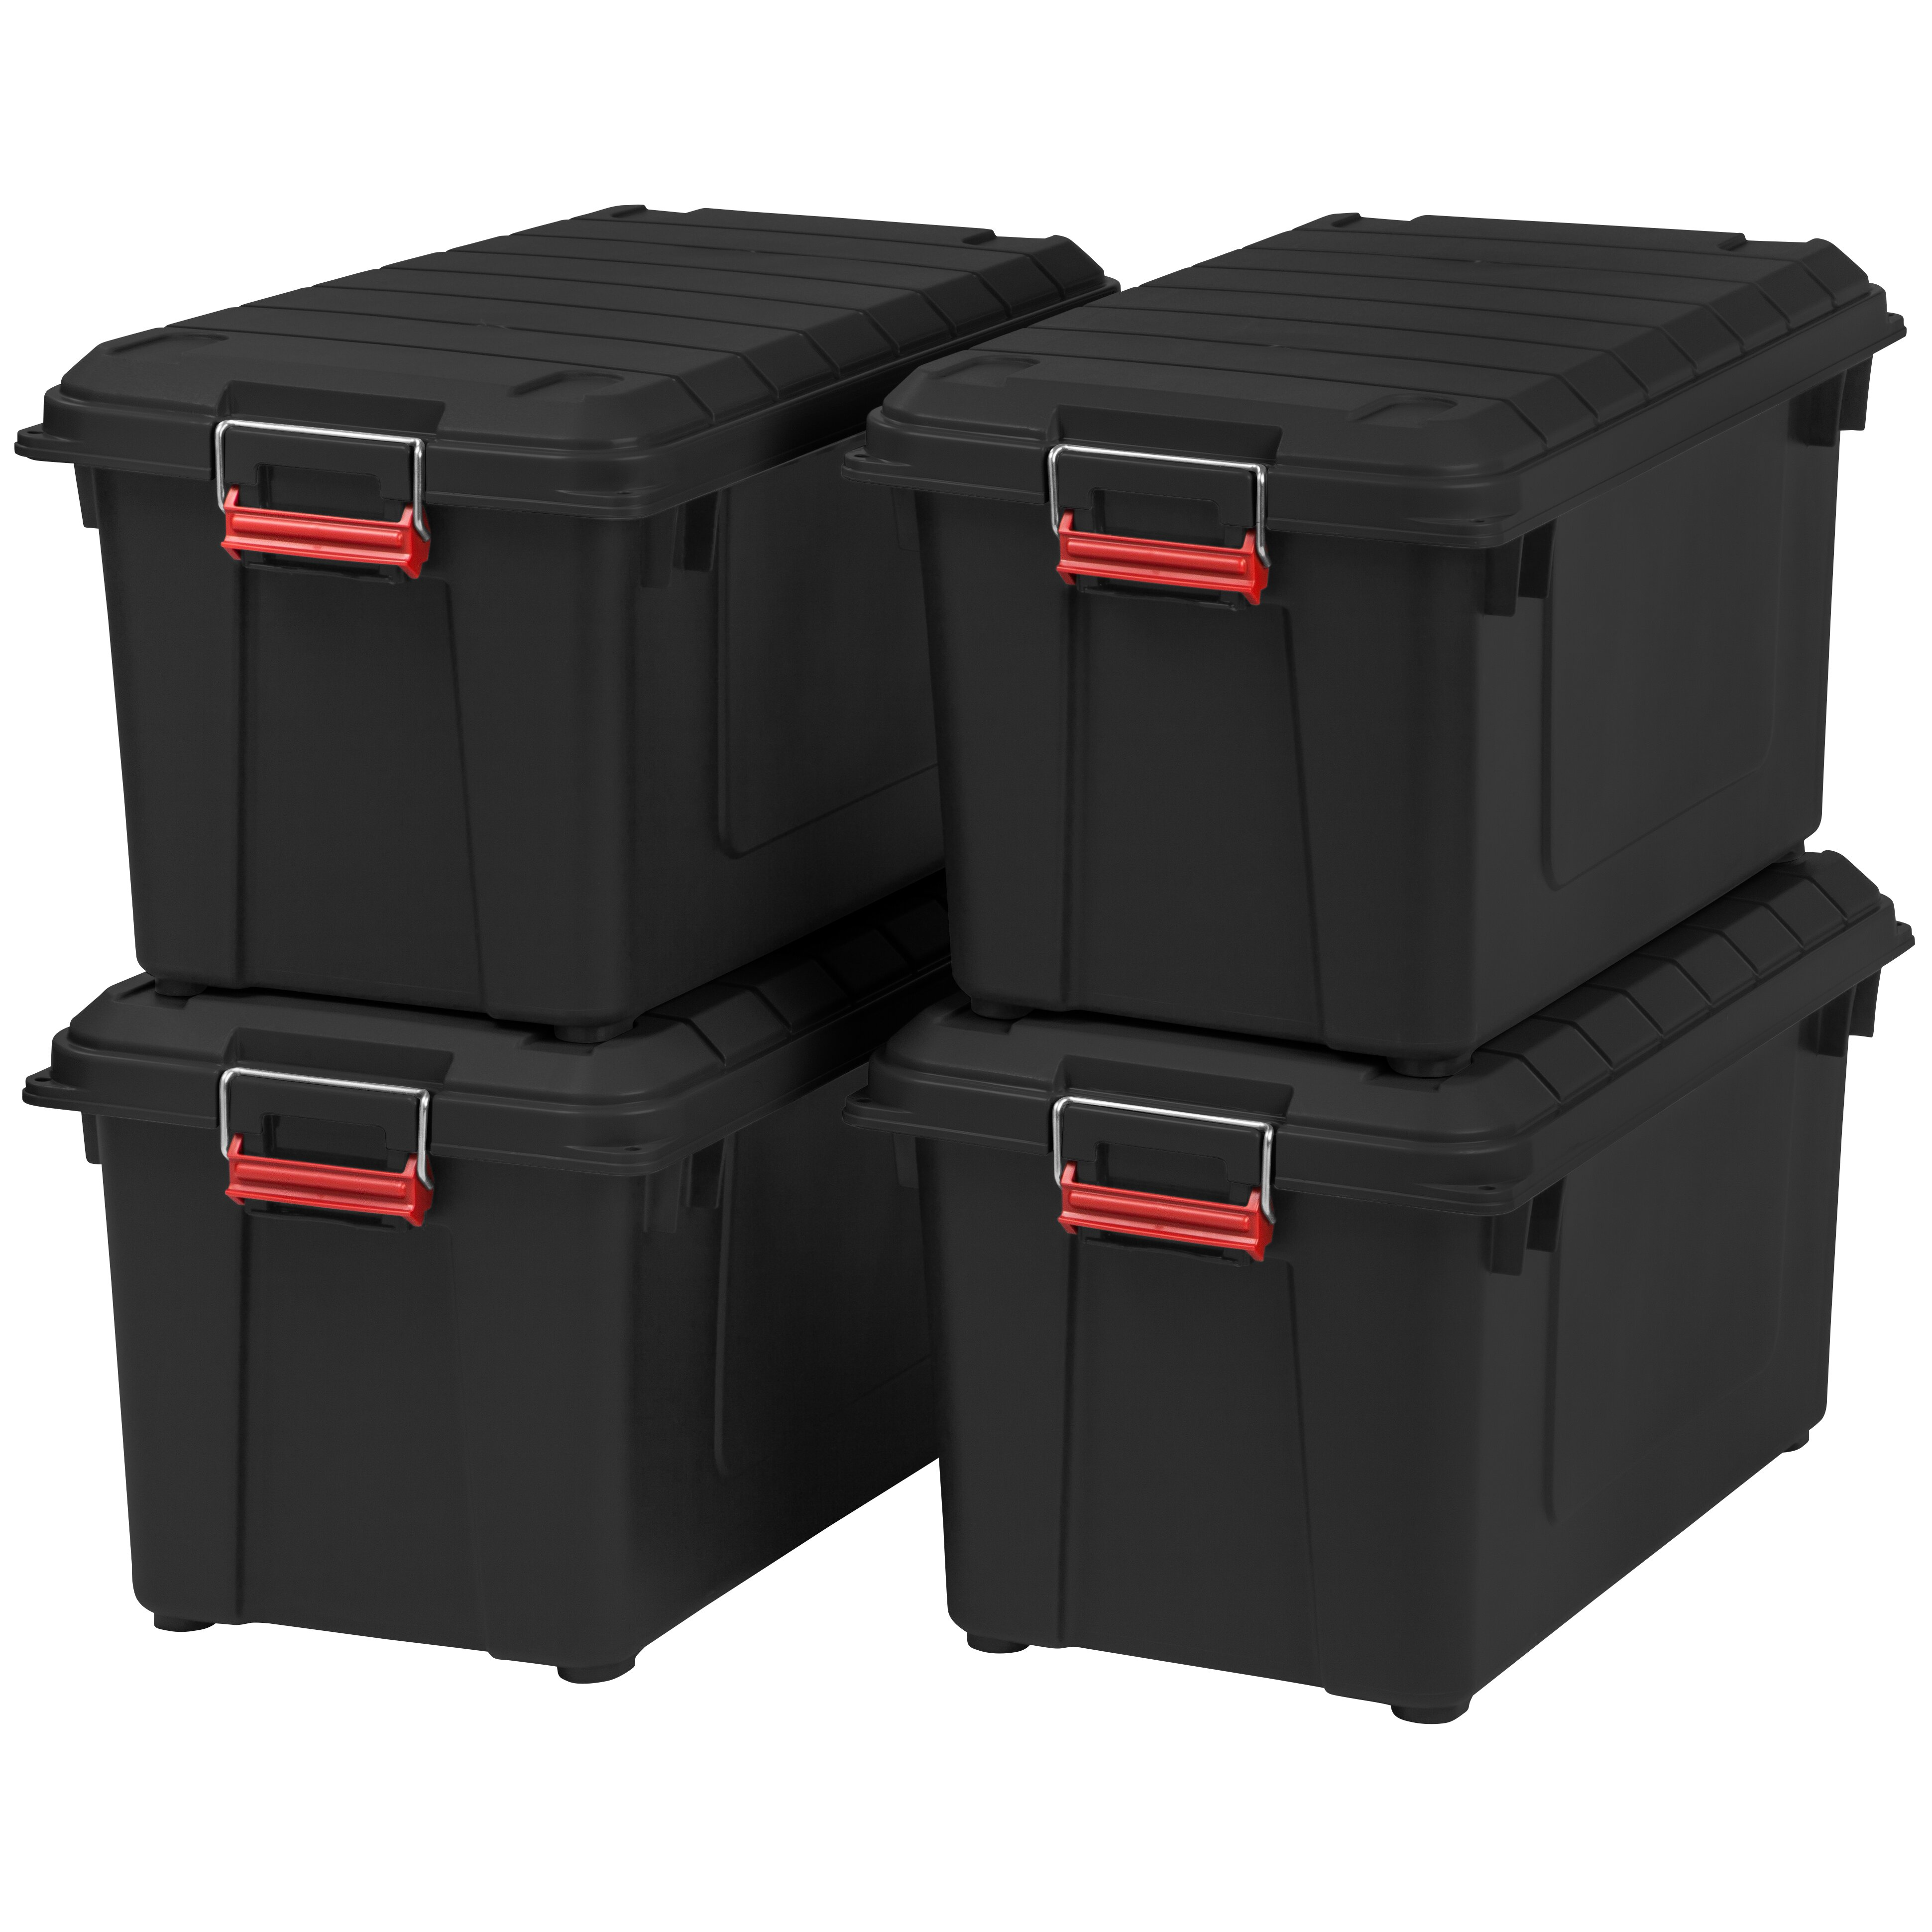 Image Result For Industrial Plastic Totes